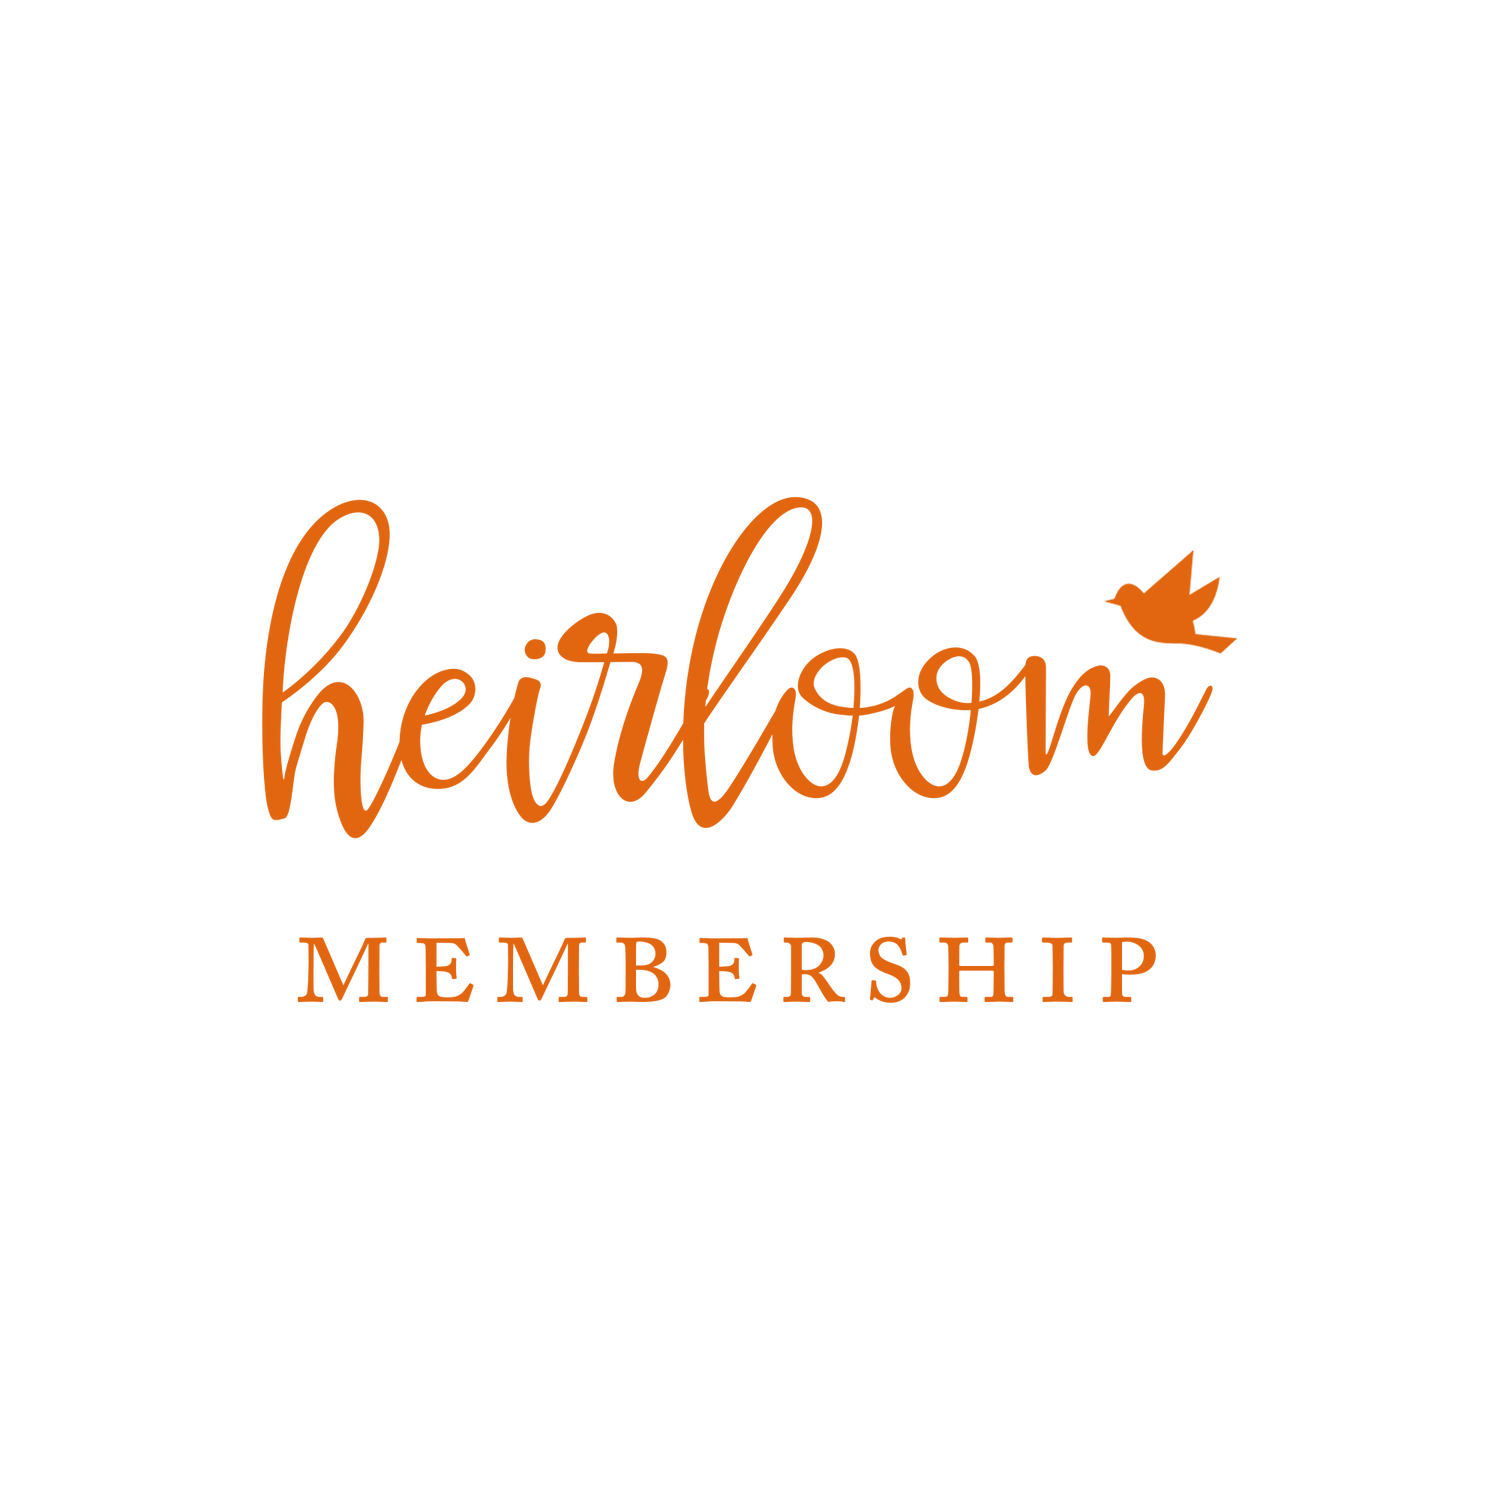 Image of Heirloom Membership